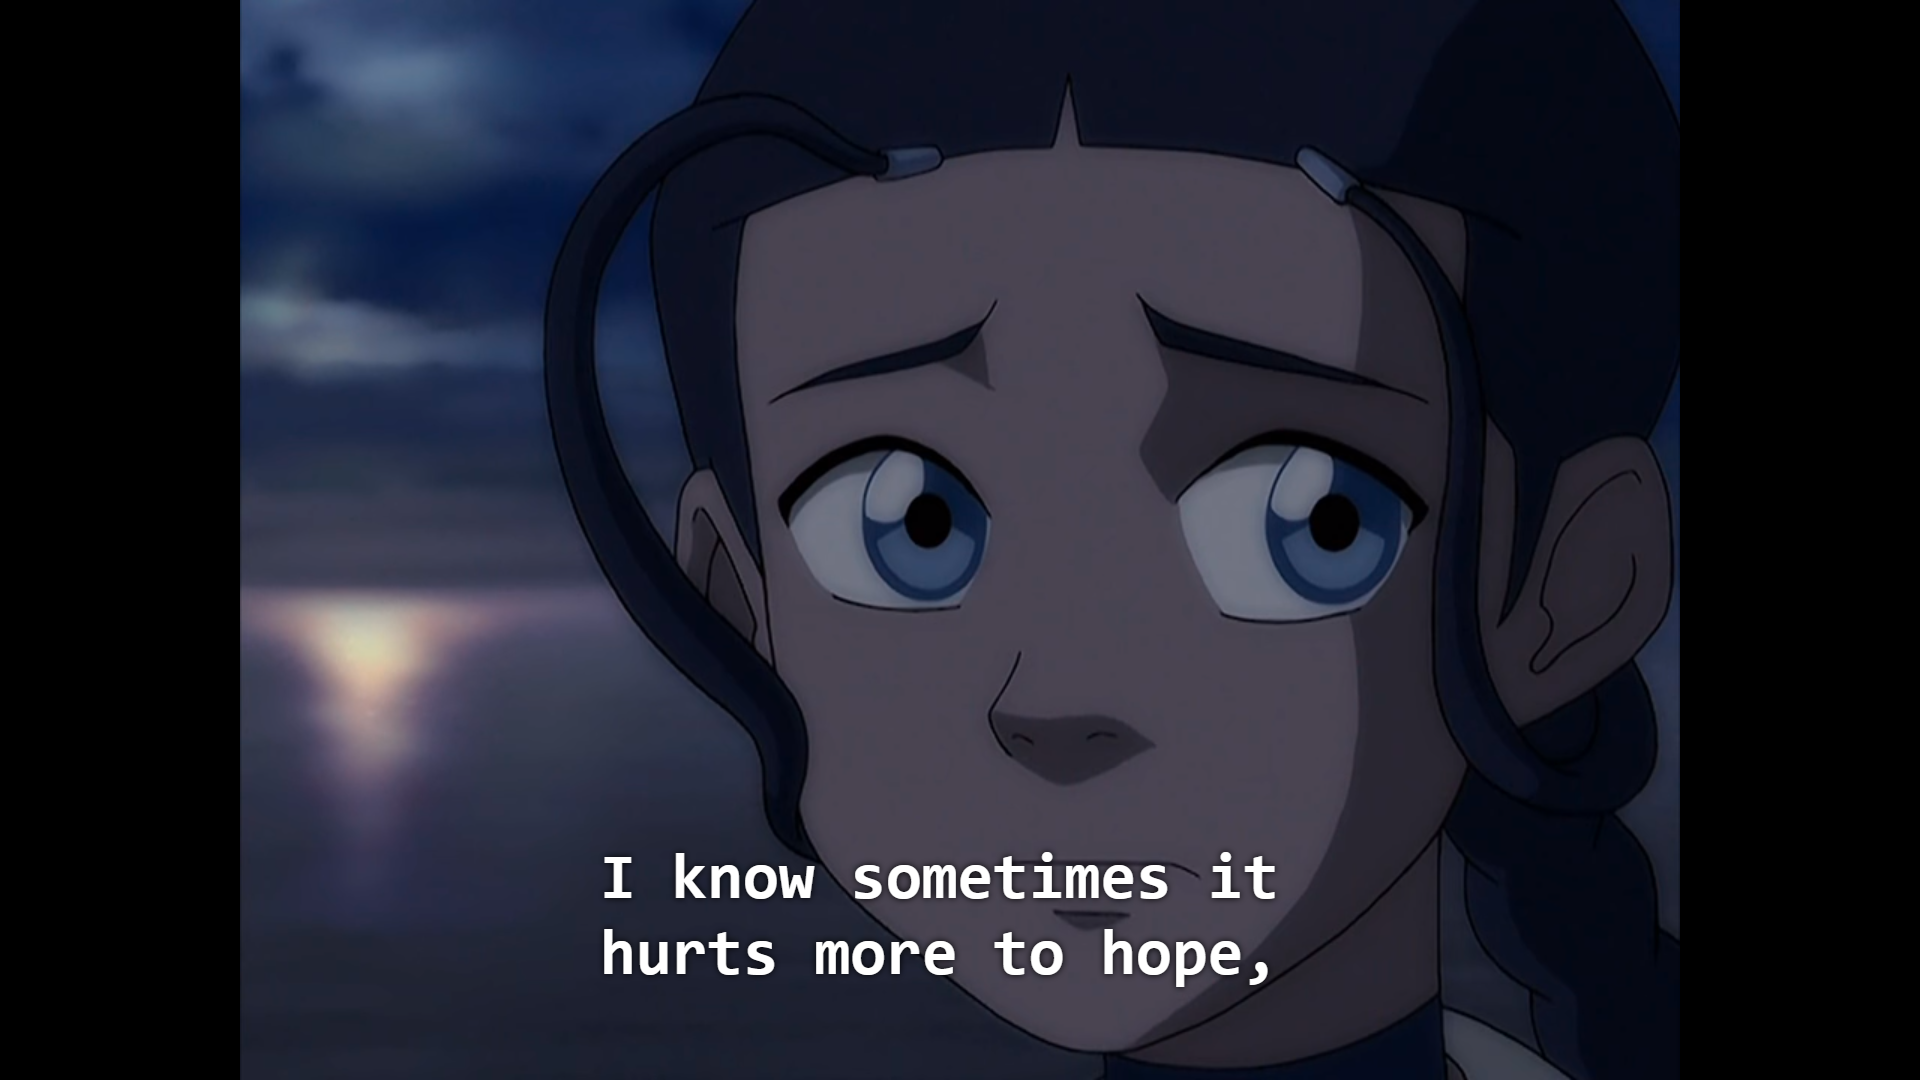 """🌈#FreeThemAll a Twitter: """"this scene from avatar: the last airbender feels  relevant re: trying to be grounded in hope and care... """"I know it hurts  more to hope and it hurts more"""